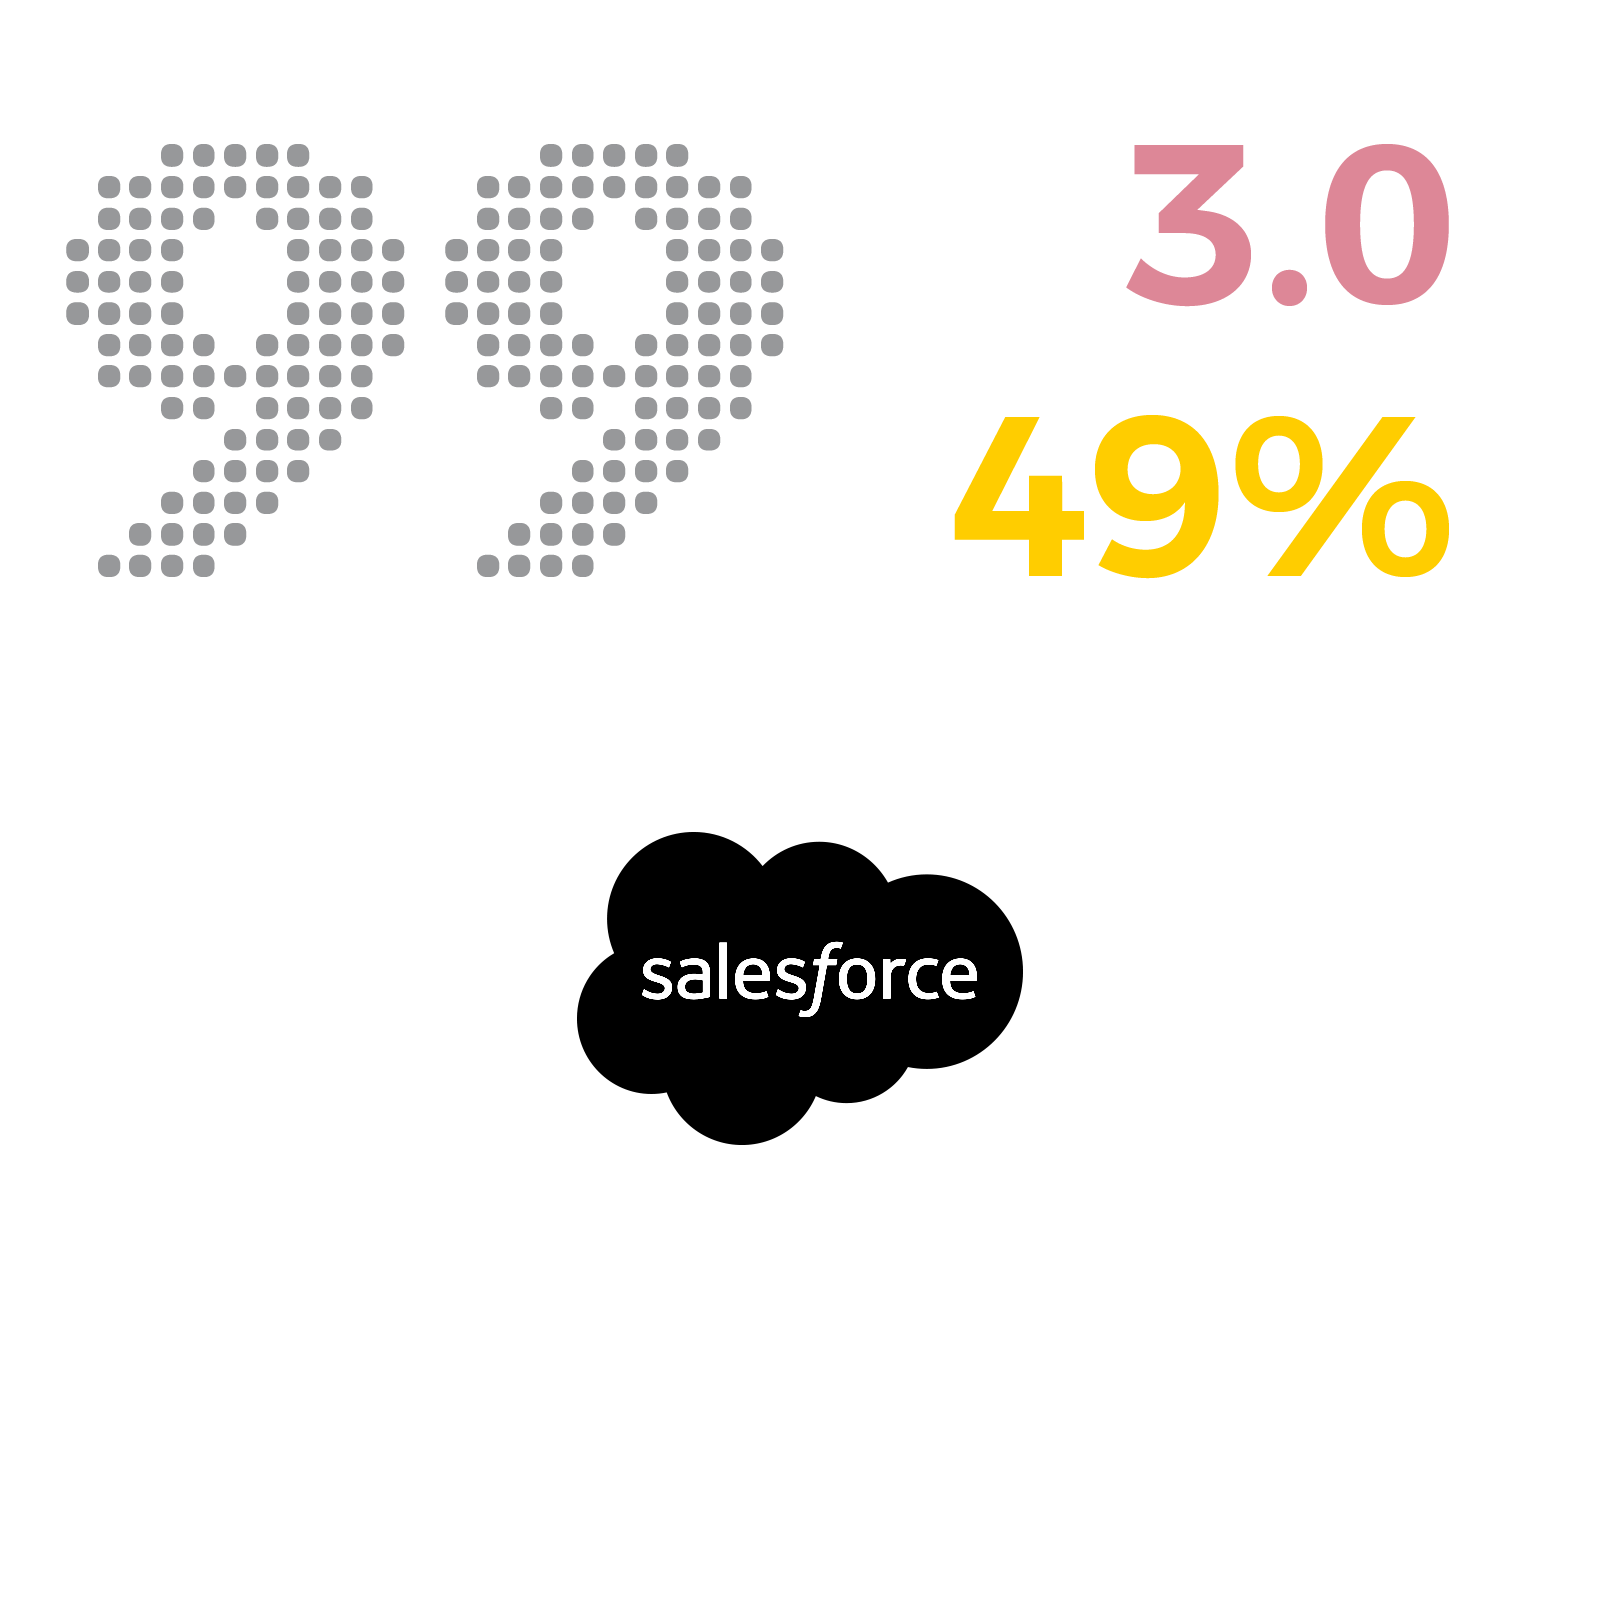 99_Salesforce.png